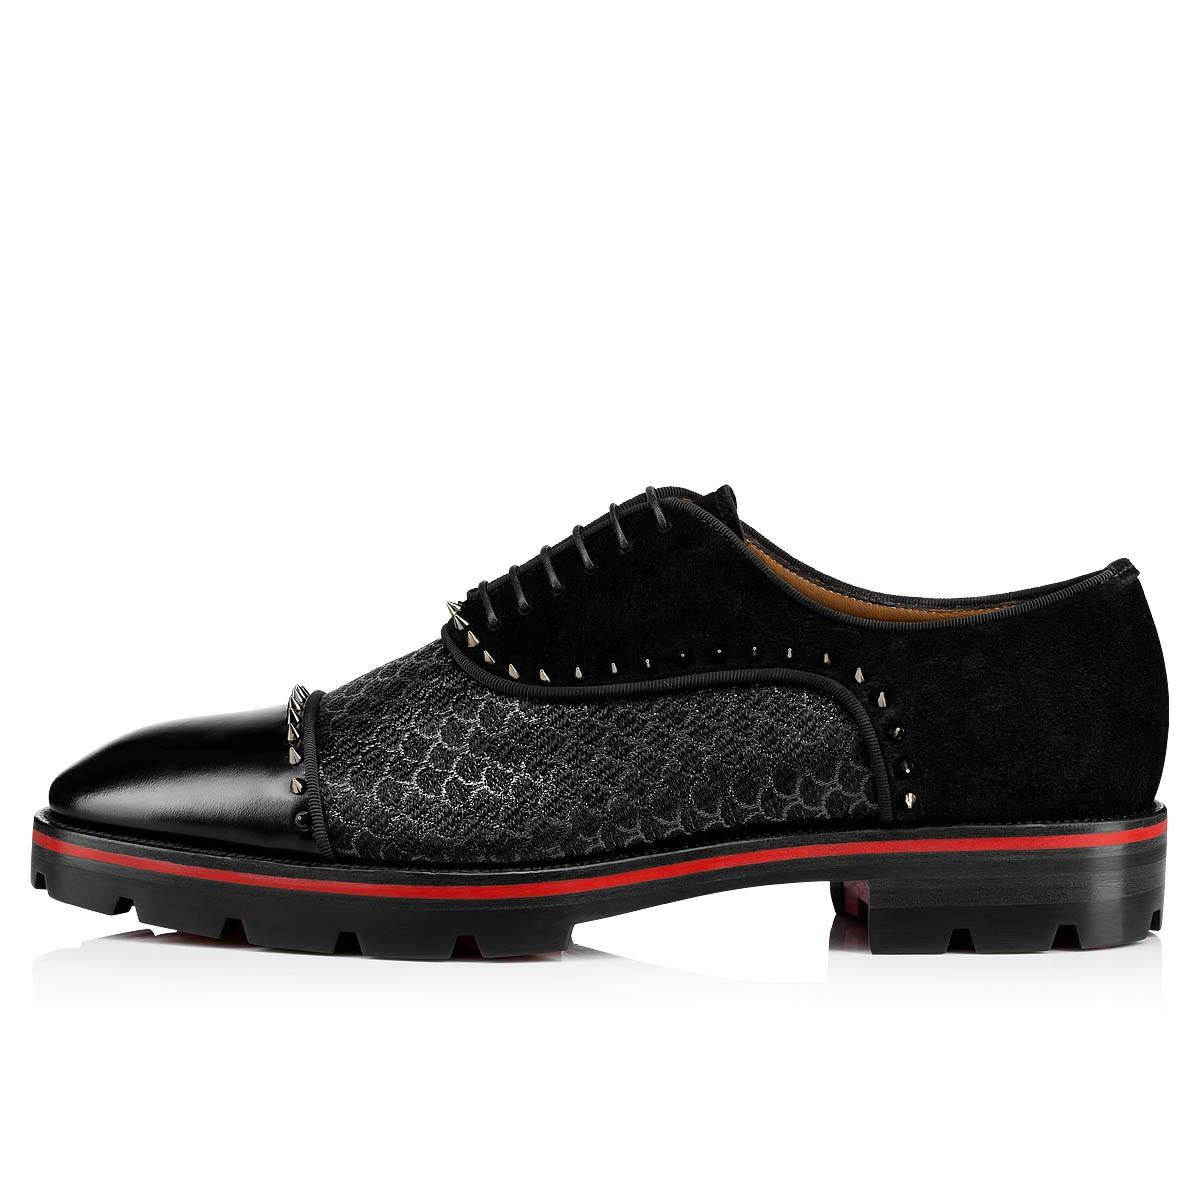 Leisure Gentleman Leather Flats Shoes Red Bottom Oxfords Loafers Luxurious Moccasin Tire Rubber Soles Genuine Leather With Buckle Super Shoe